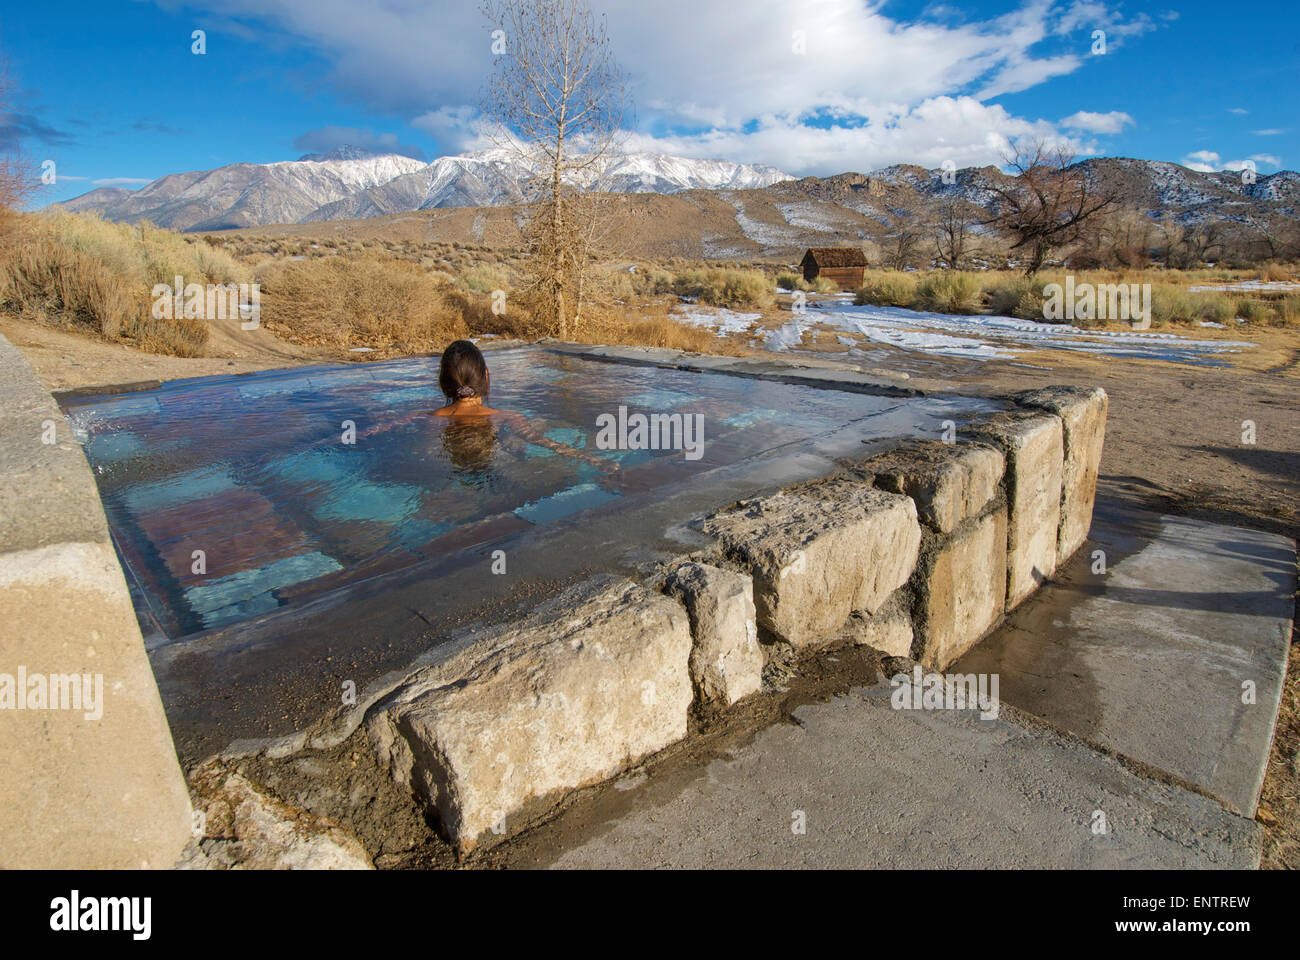 water therapy stockfotos water therapy bilder alamy. Black Bedroom Furniture Sets. Home Design Ideas